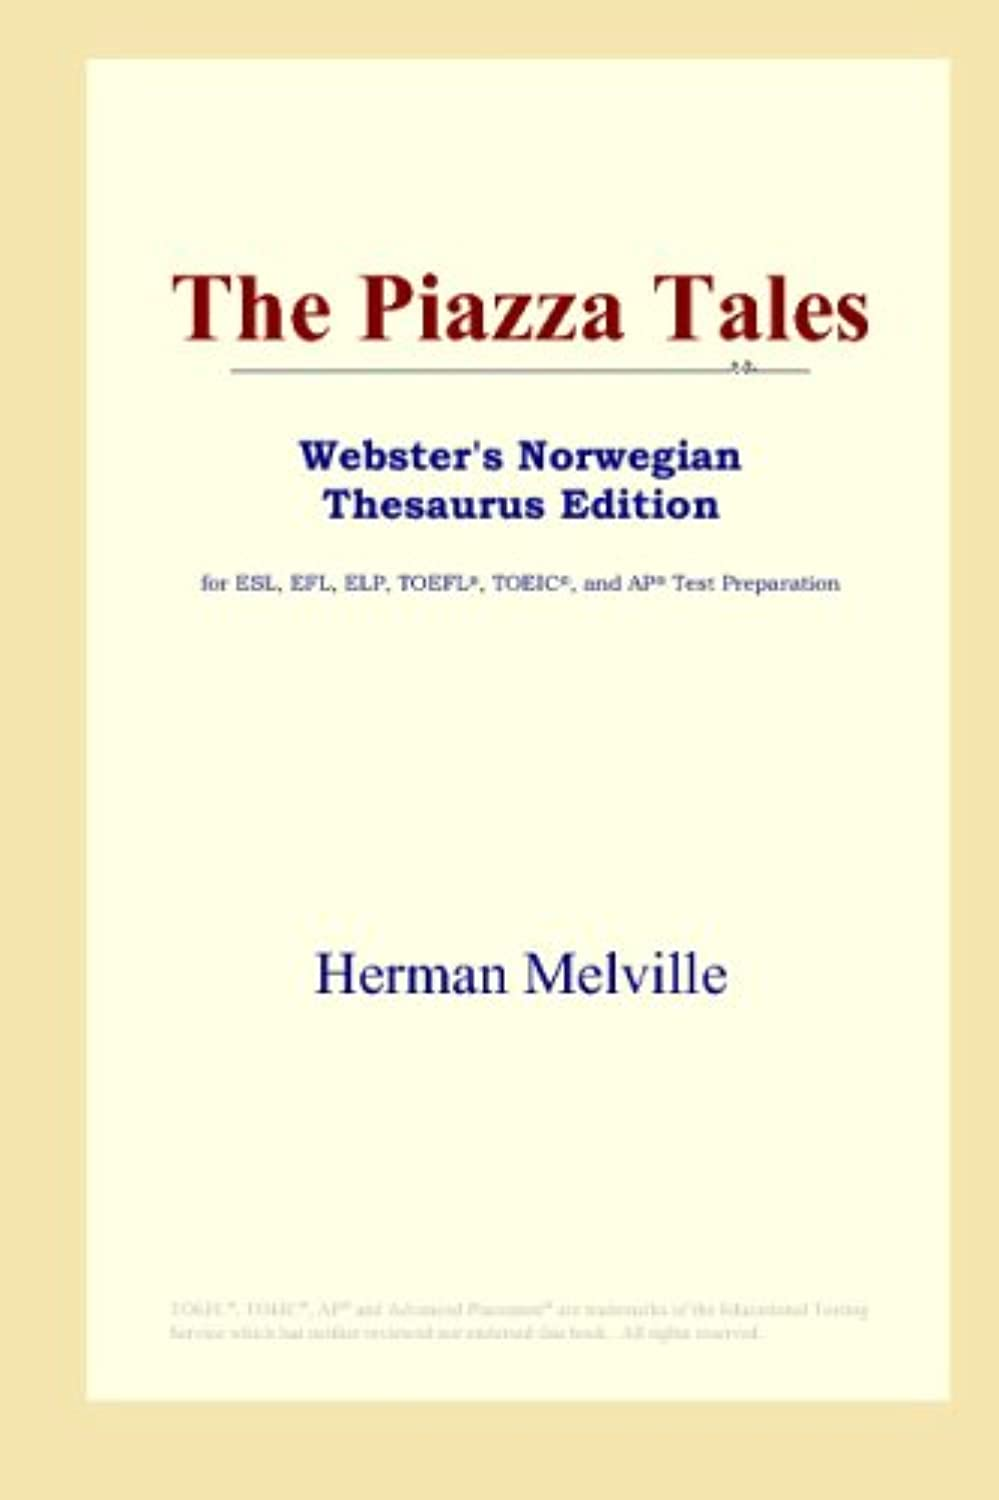 The Piazza Tales (Webster's Norwegian Thesaurus Edition)